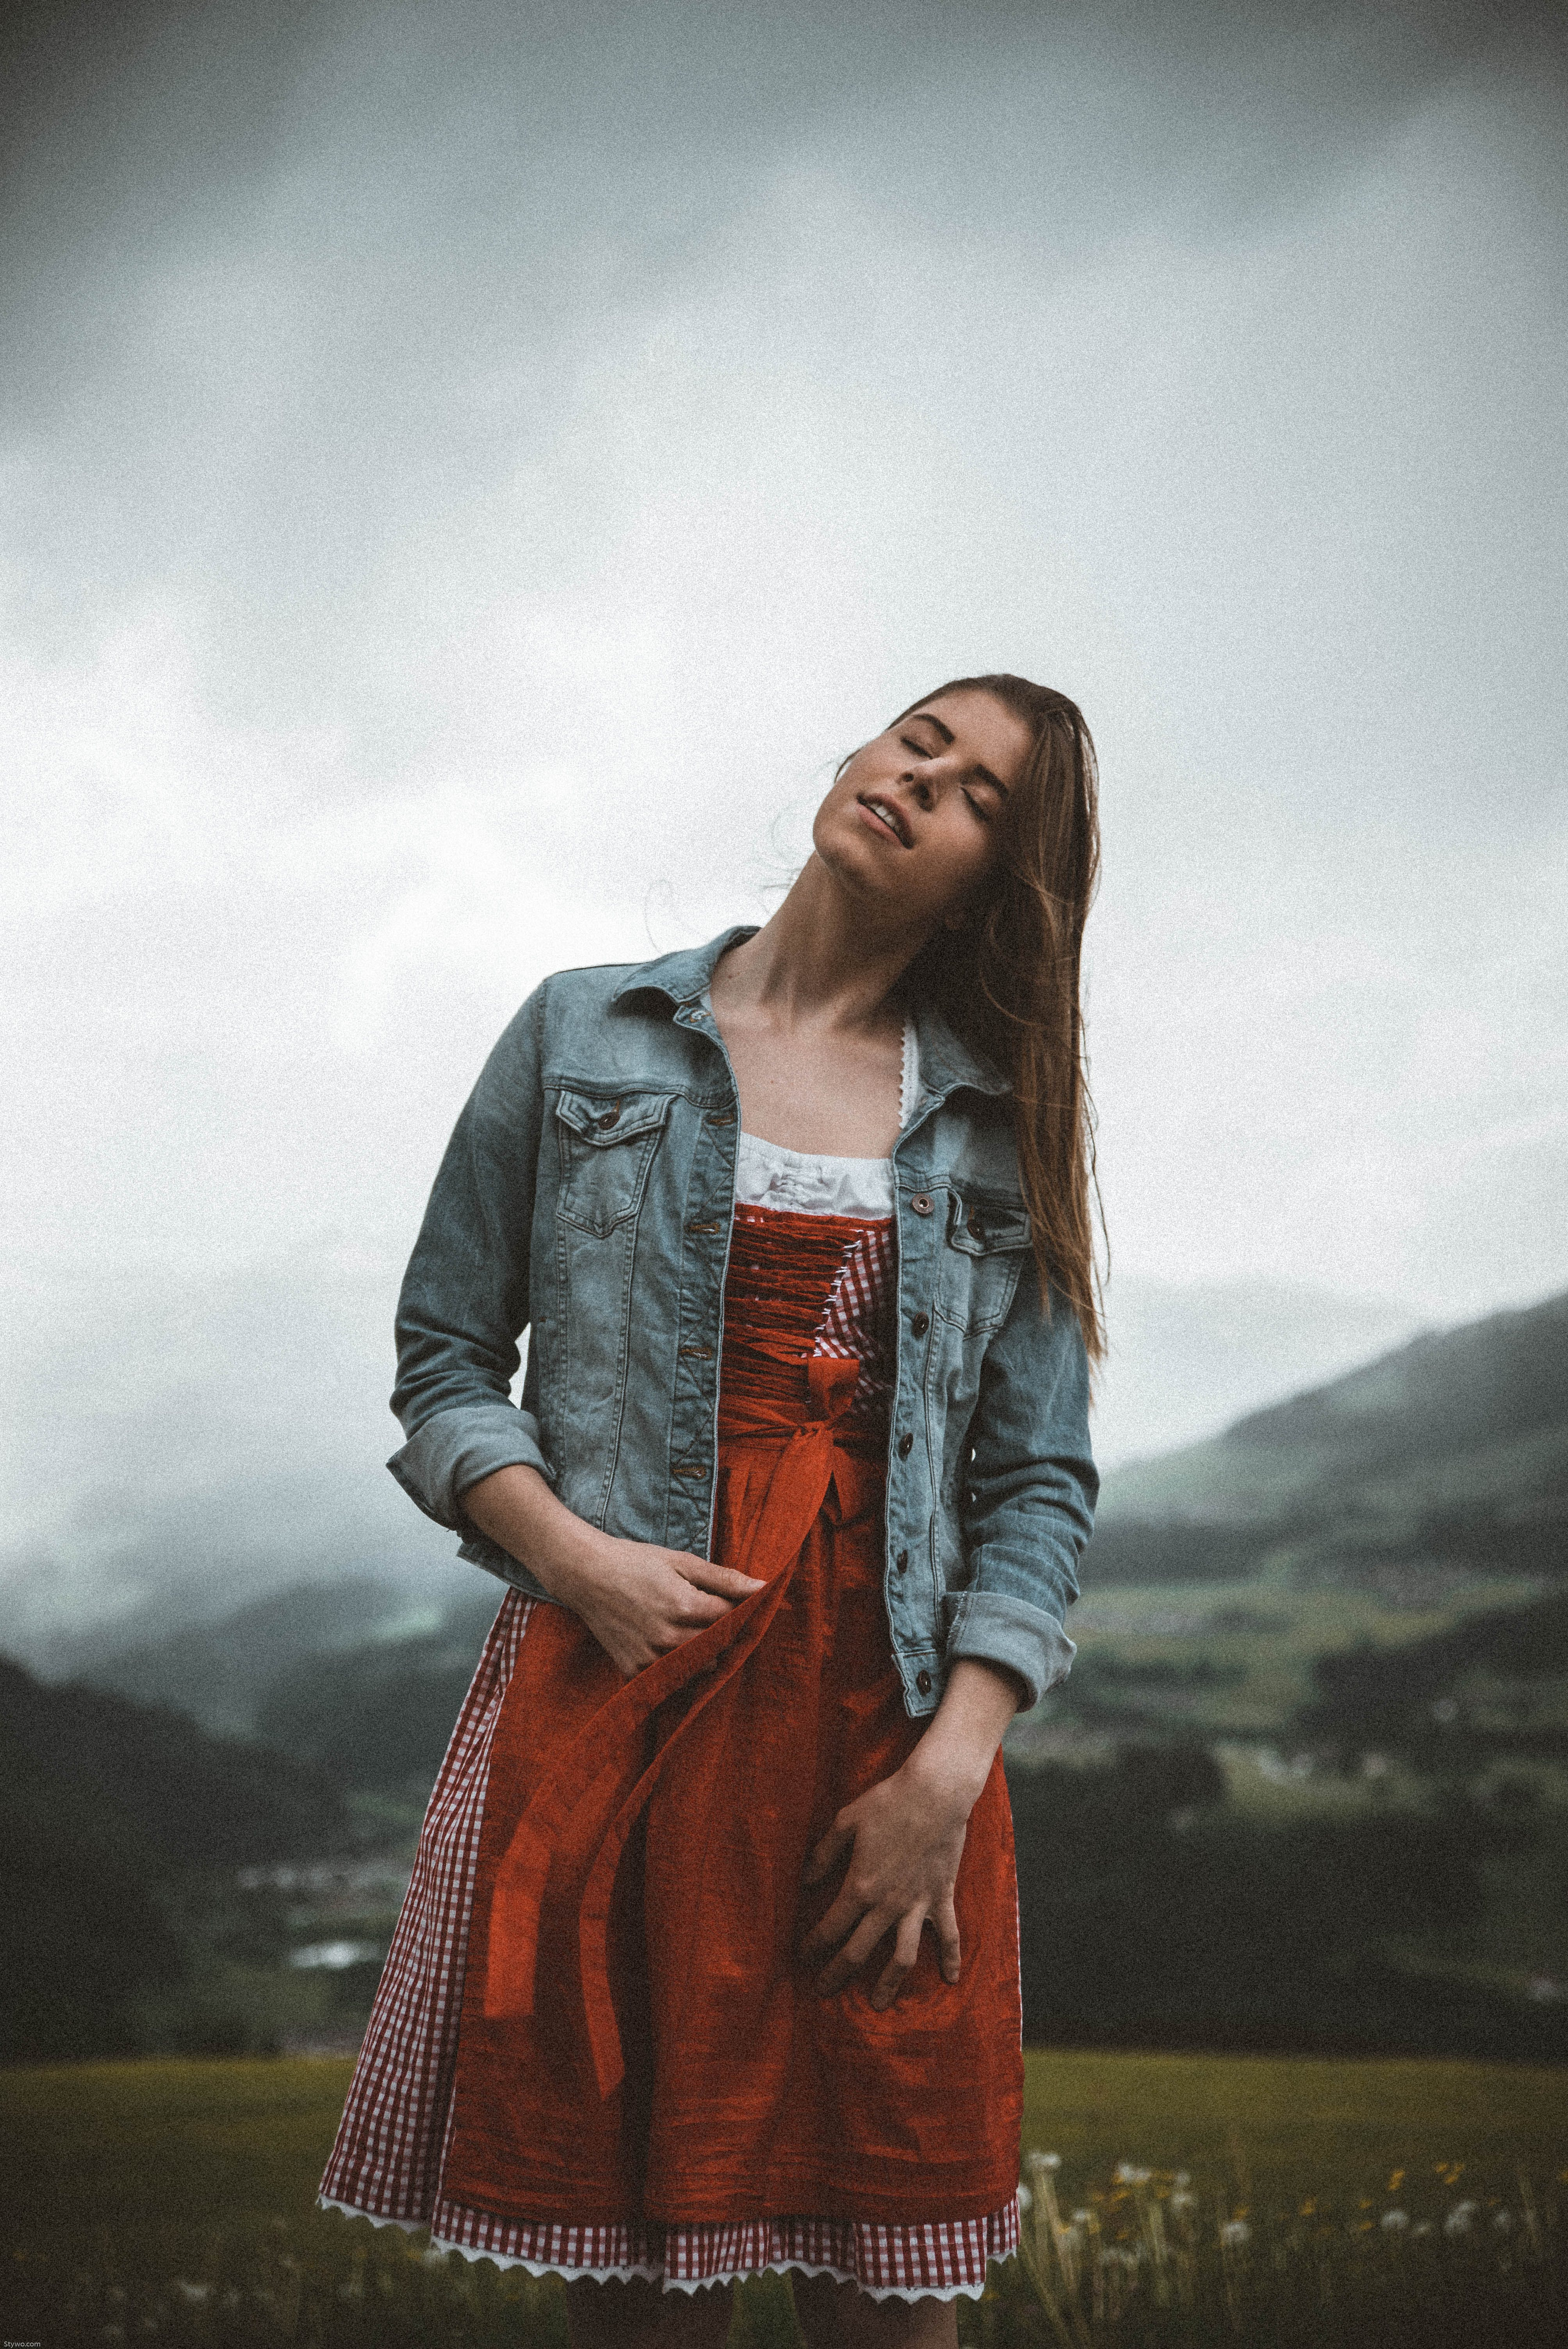 Woman in Red and White Dress Posing for Photo